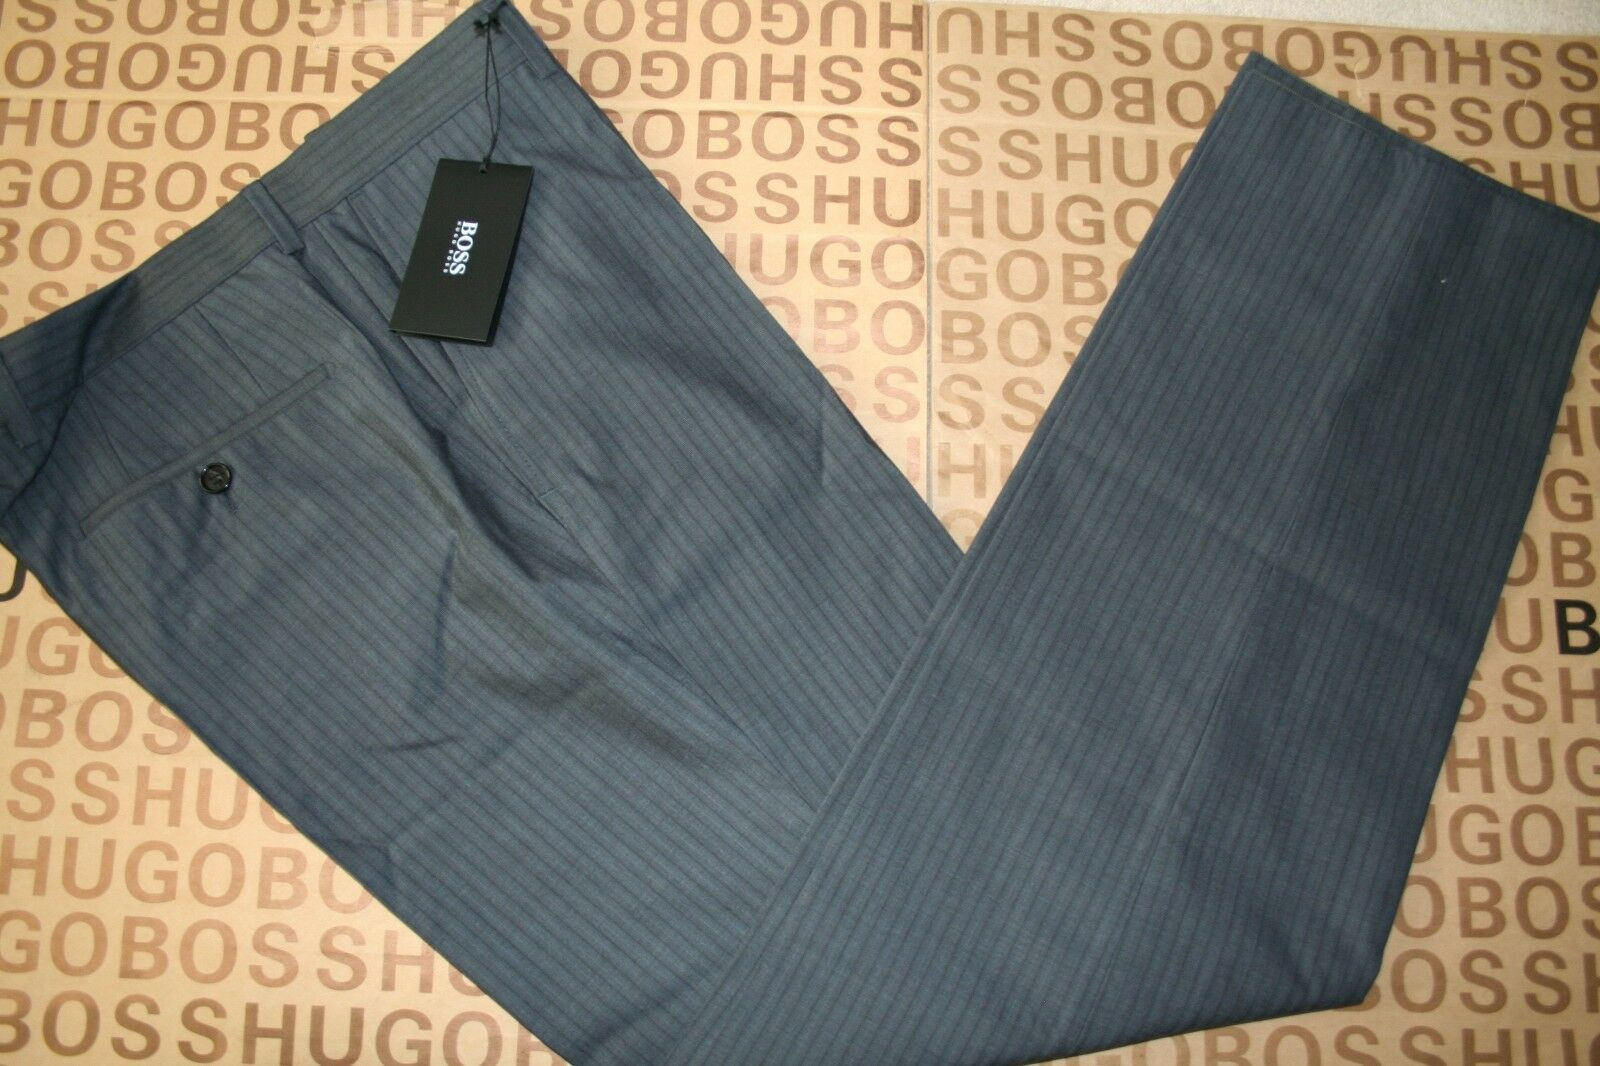 NEW HUGO BOSS MENS GREY SMART VIRGIN WOOL STRIPED SUIT SHIRT TROUSERS PANTS 34R